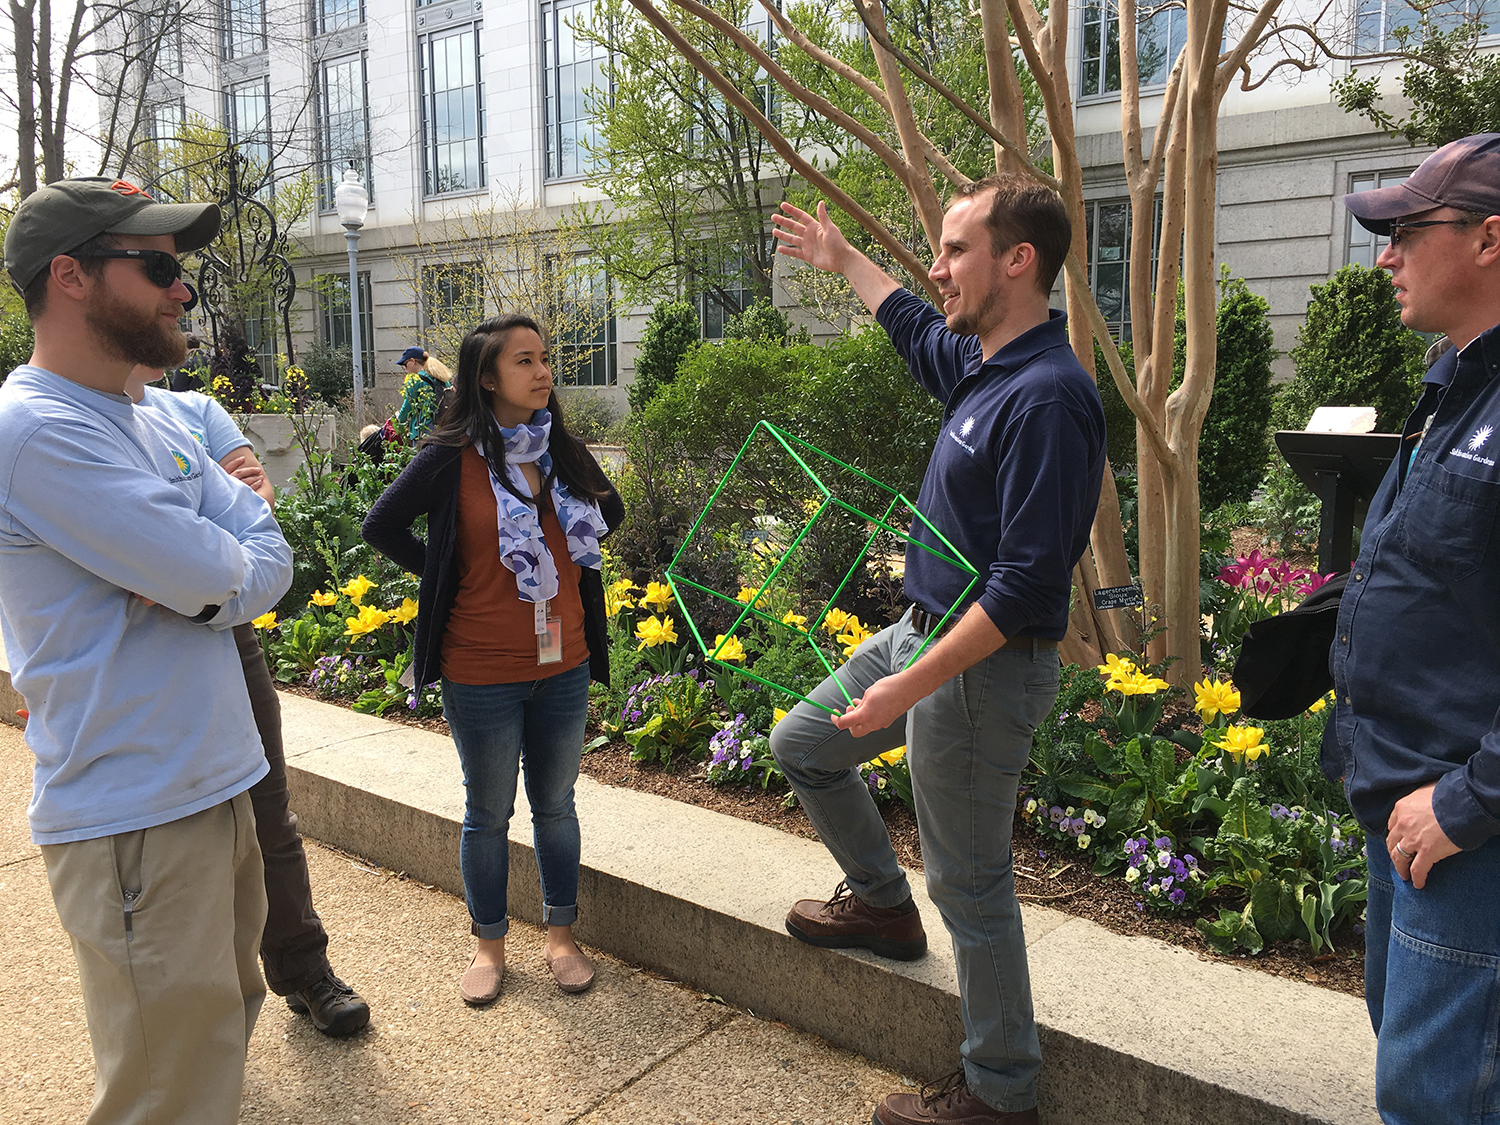 James meeting with staff of Smithsonian Gardens and the National Museum of Natural History to discuss an upcoming exhibit in the Pollinator Garden on Biocubes—the life in a cubic foot of soil or water over one day. Close